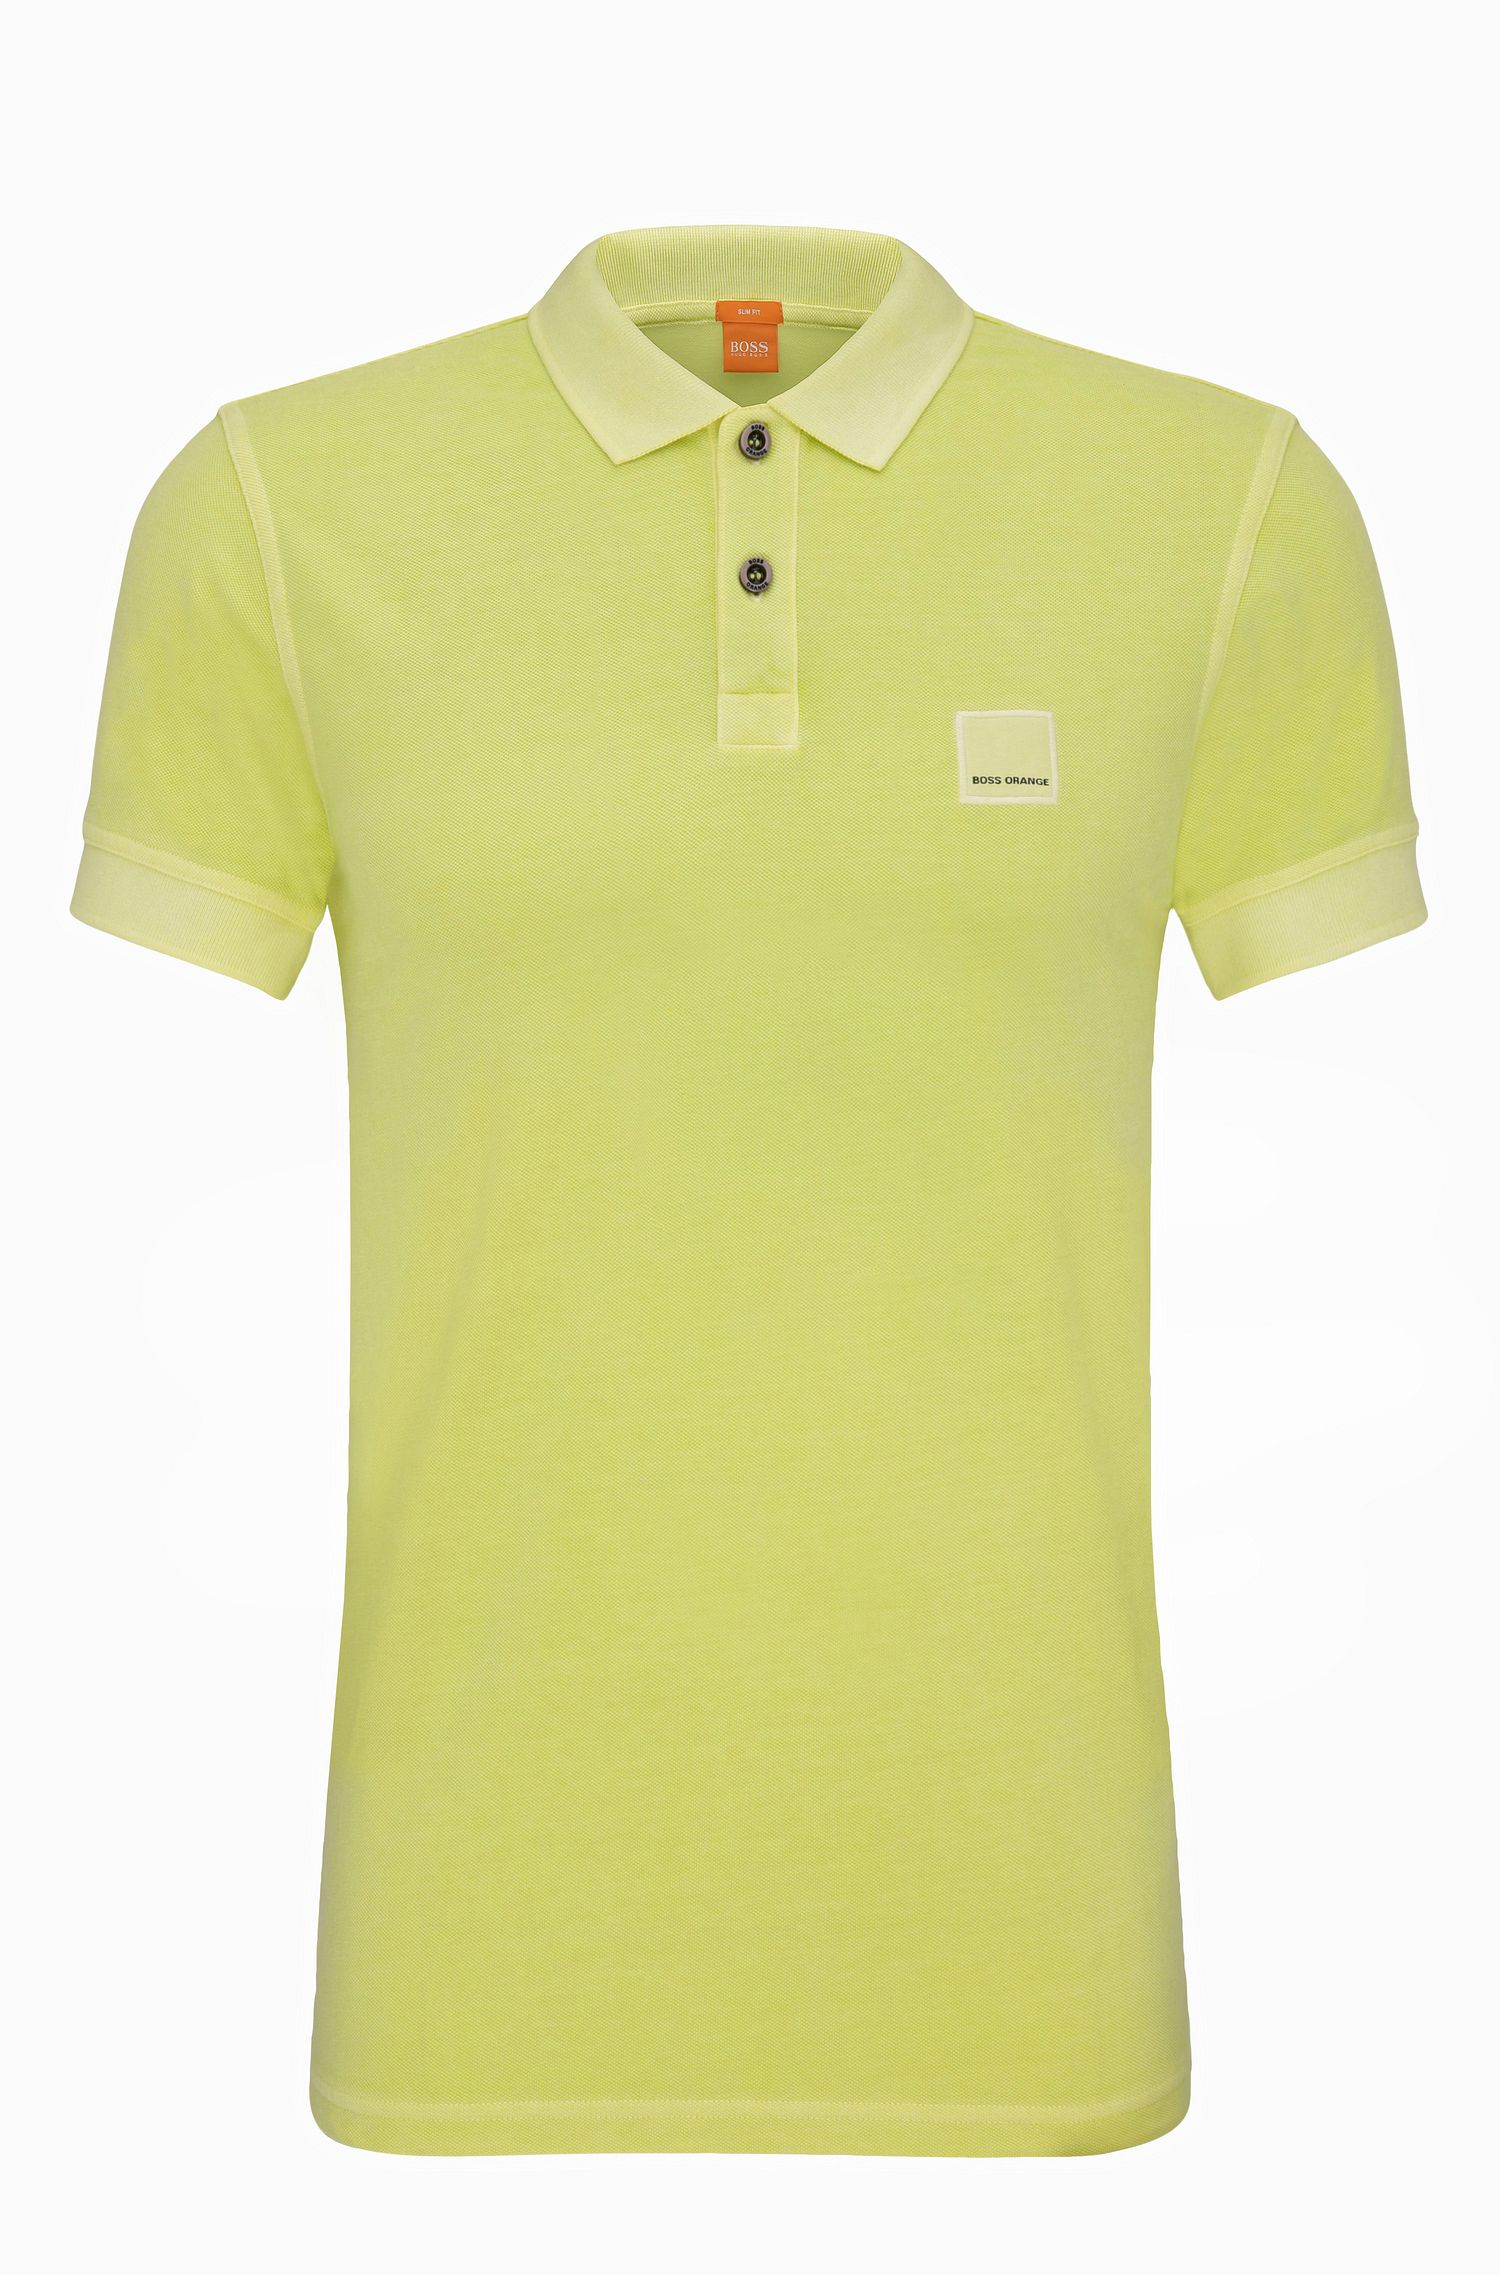 'Pascha' | Slim Fit, Cotton Polo Shirt